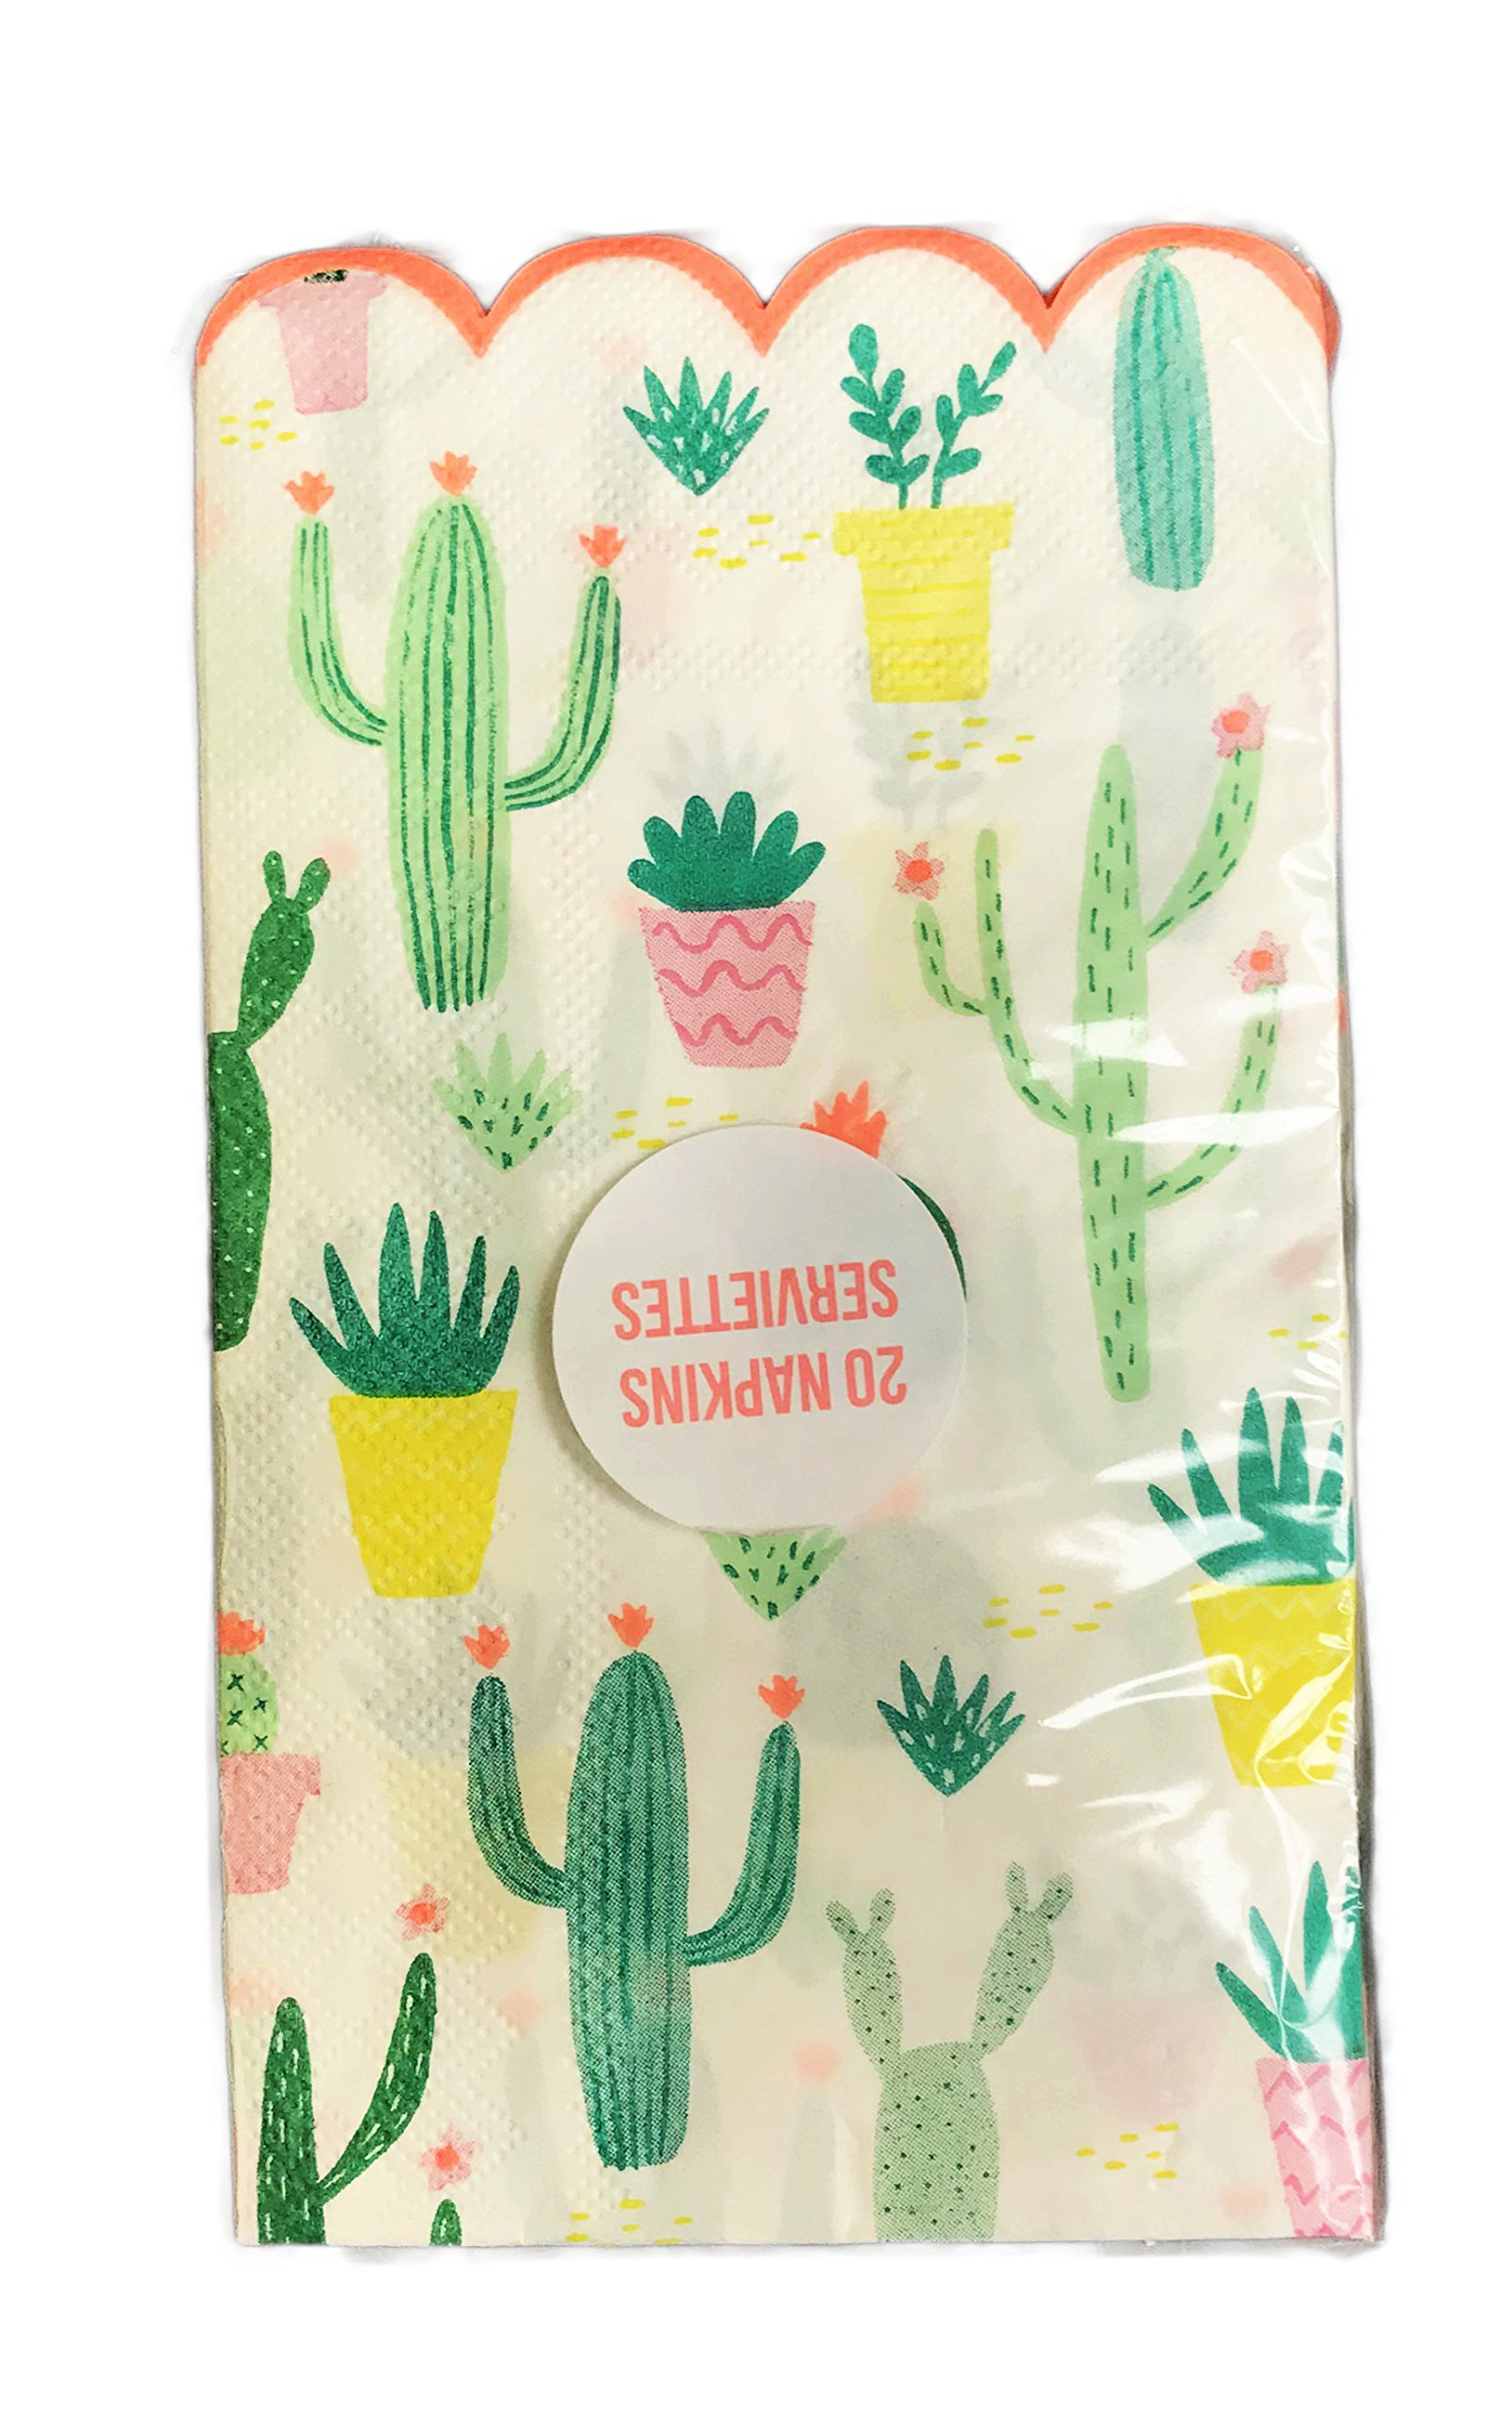 Southwest Cacti Themed Scalloped Edge 20 Pack Novelty Paper Party Beverage Luncheon Napkins (7.75 x 4.25)